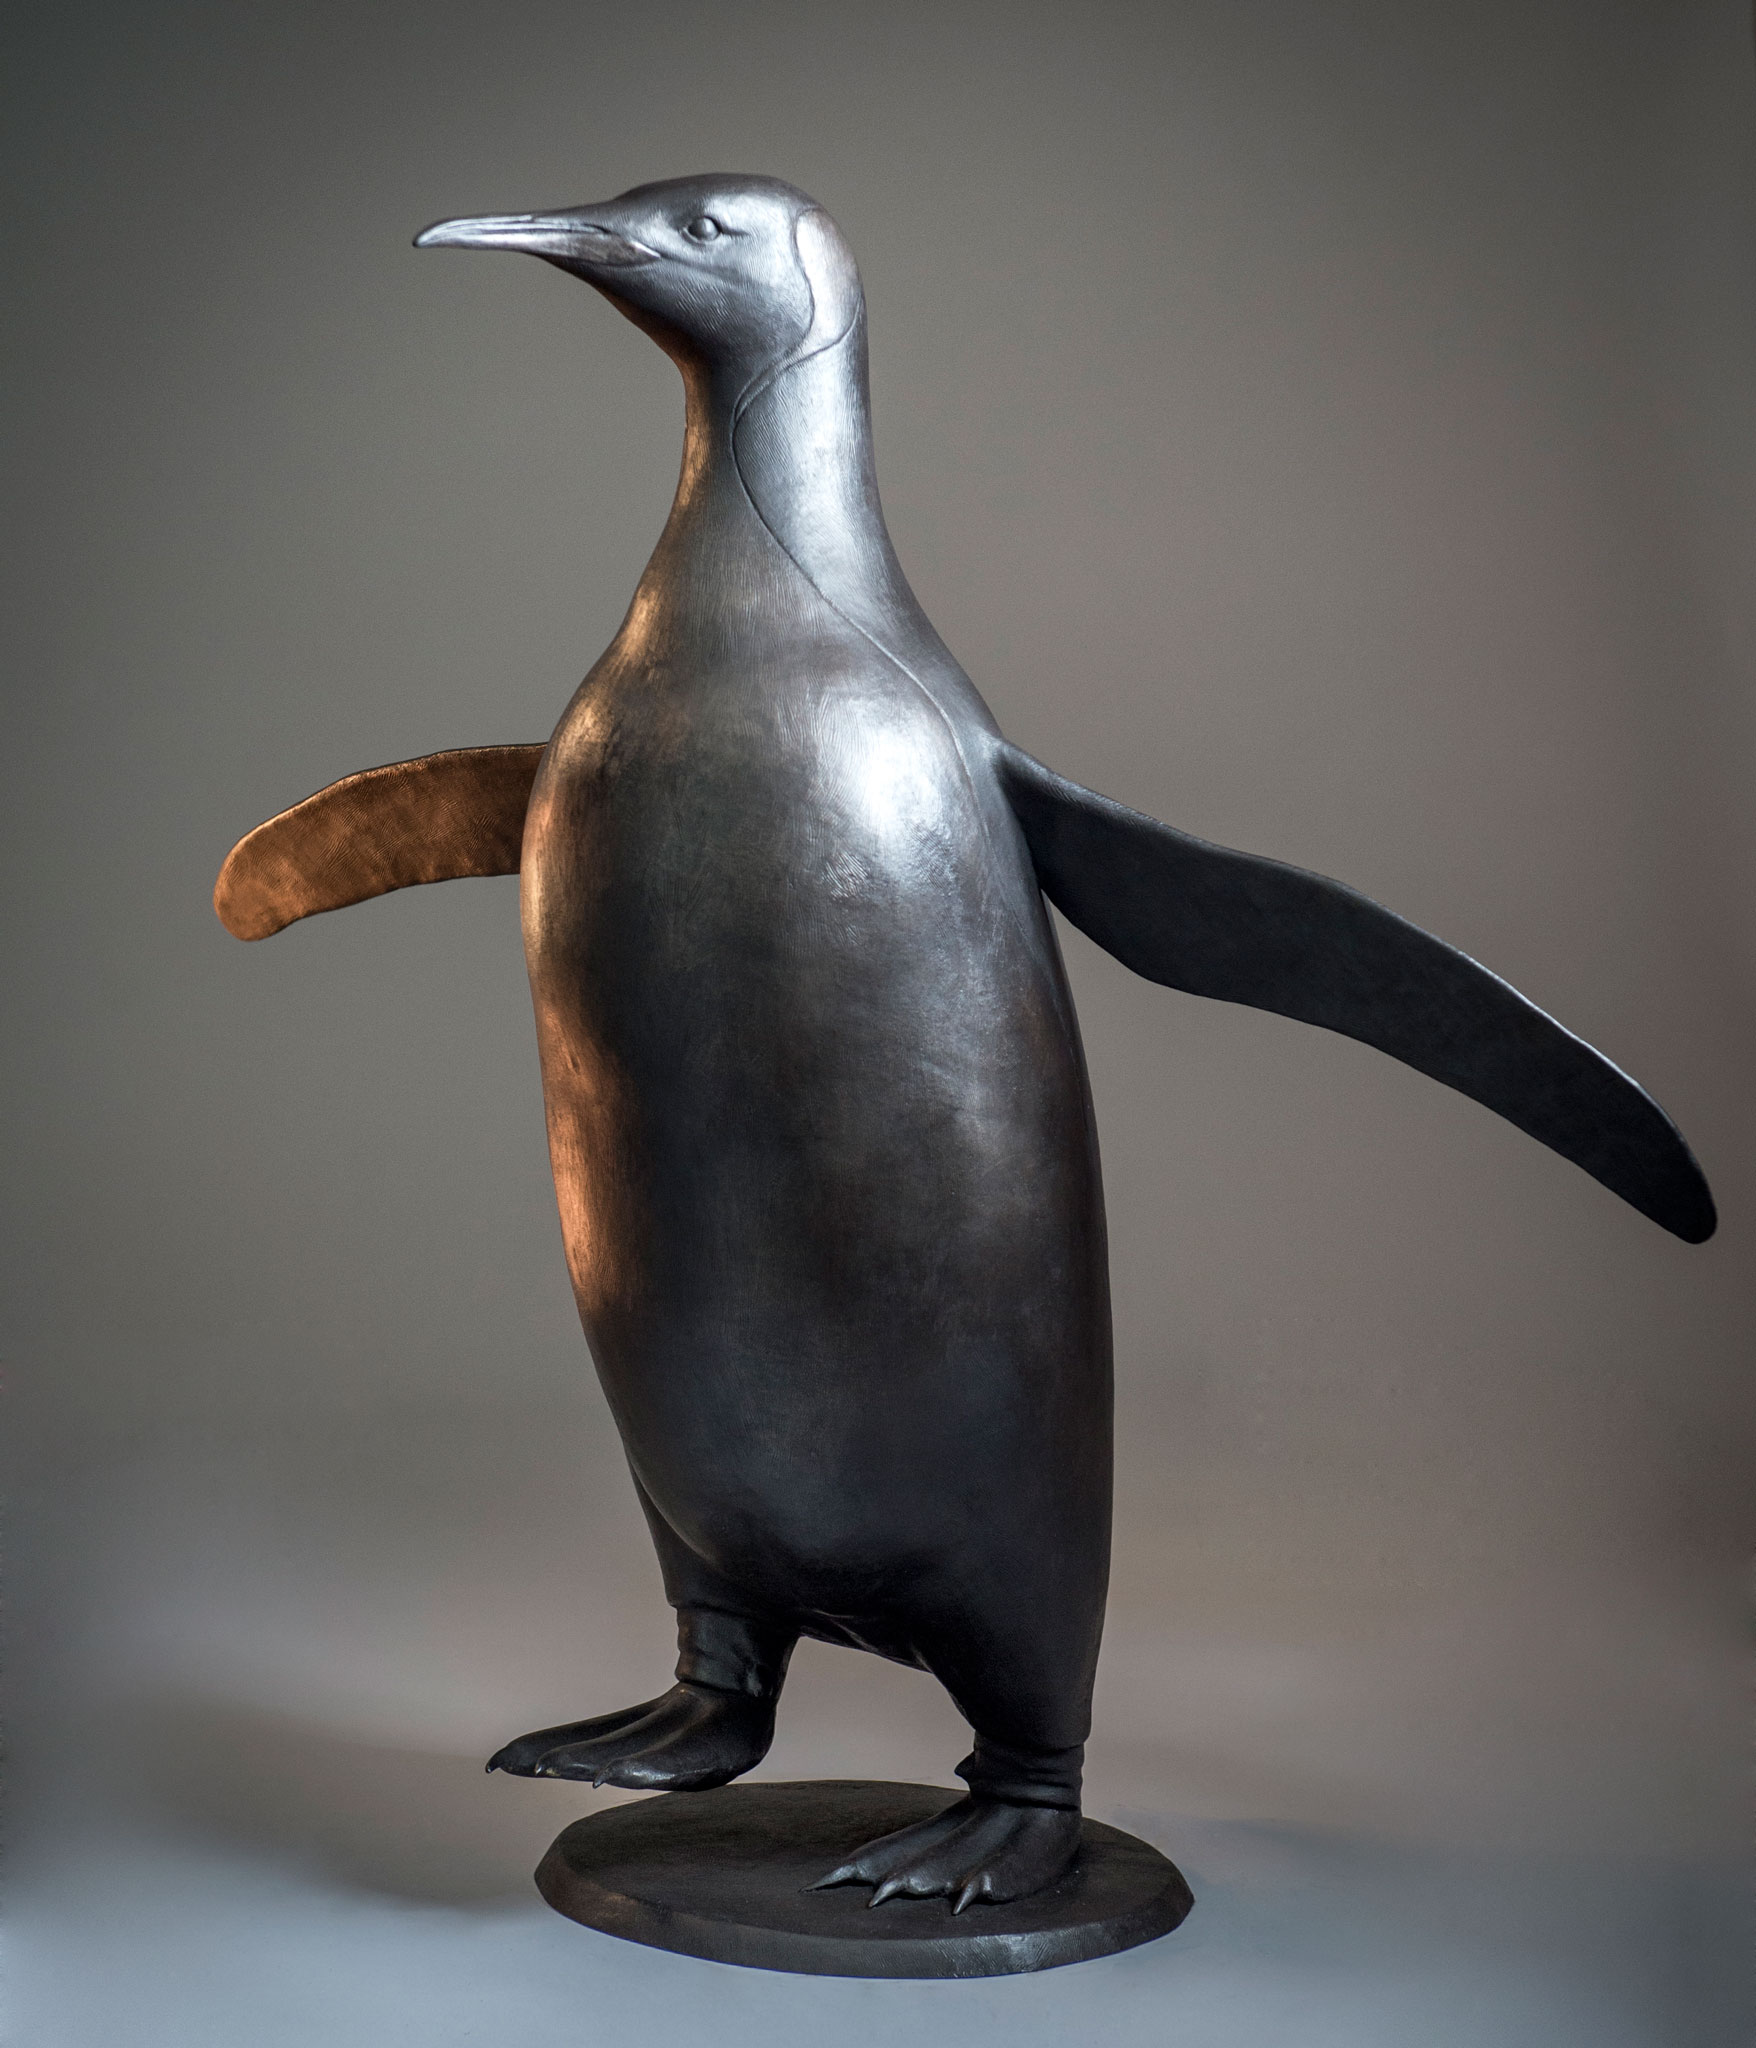 Life size bronze sculpture of a King Penguin by artist Anthony Smith